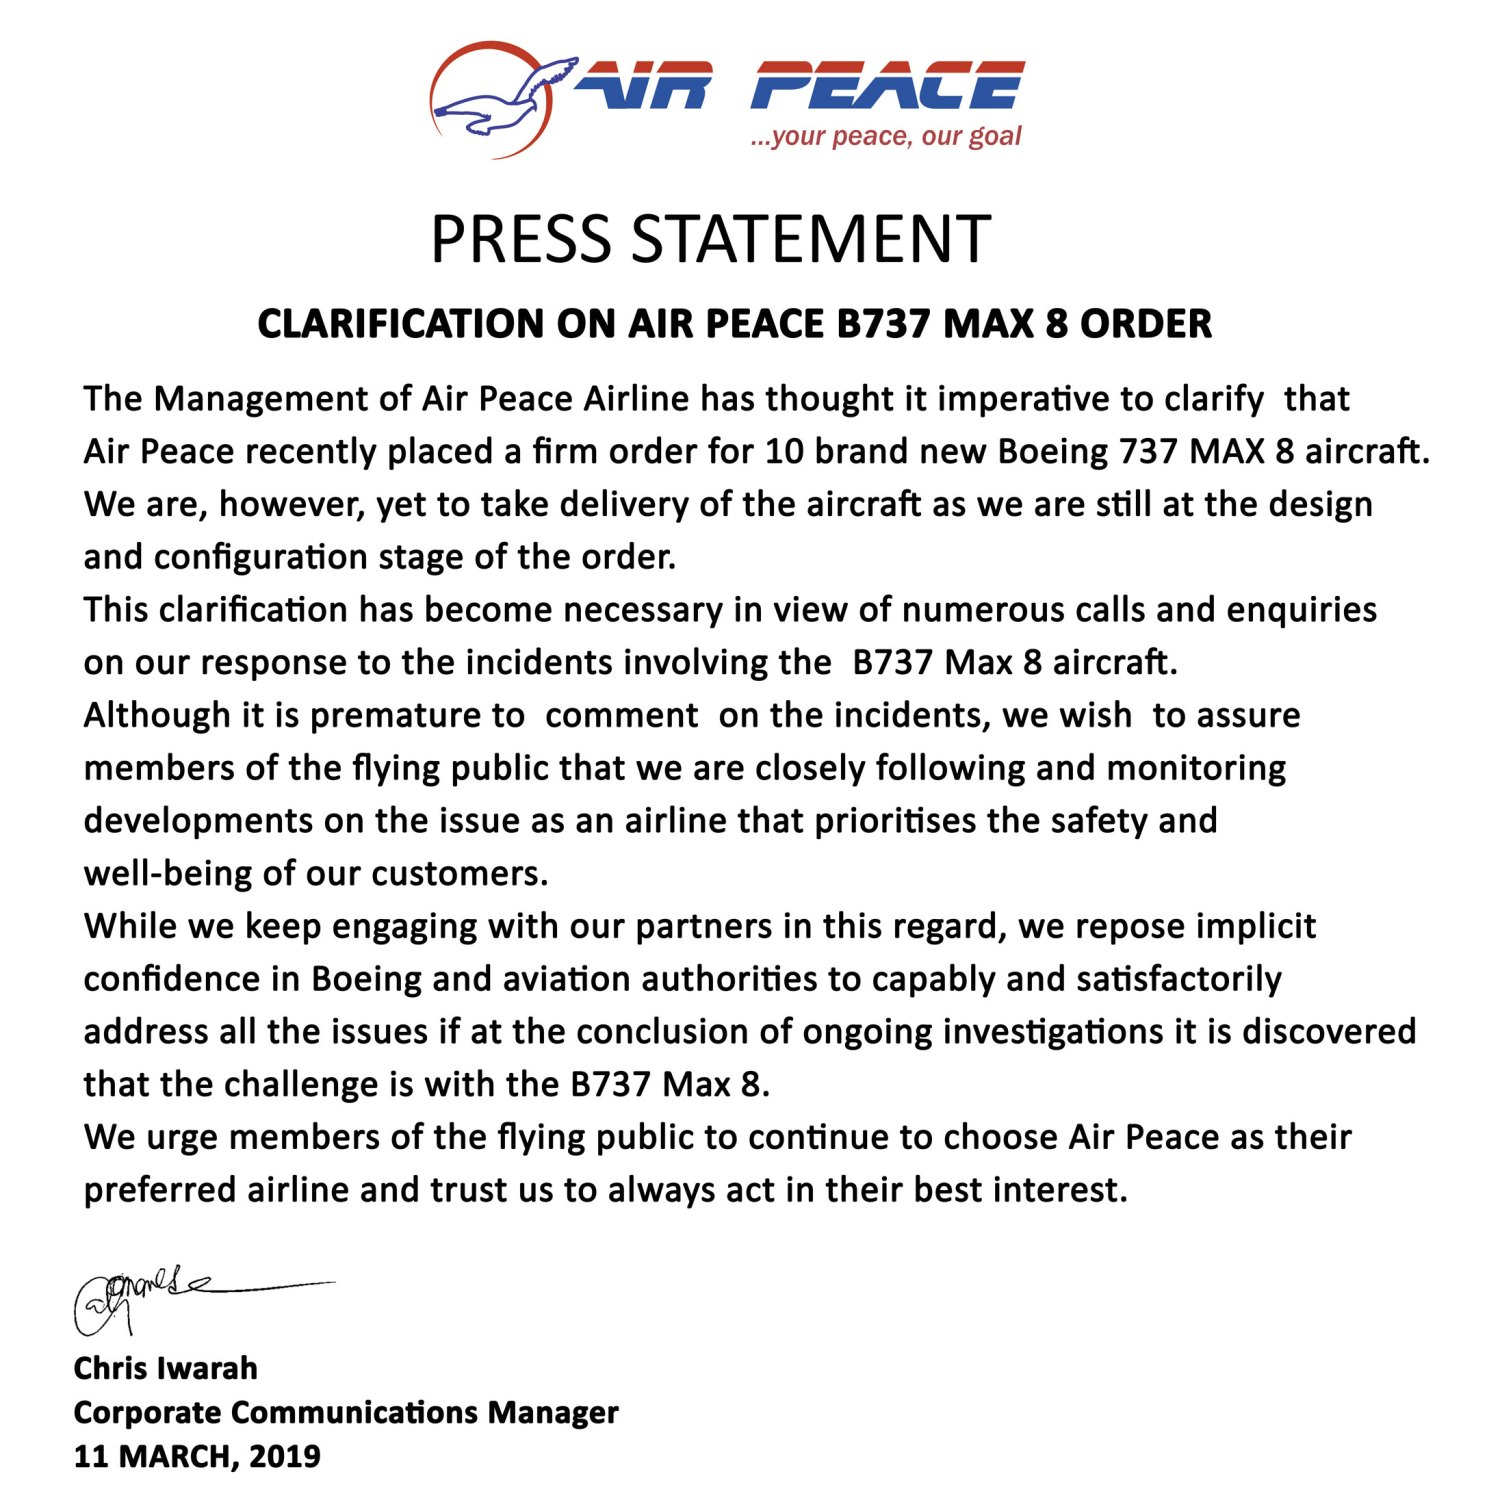 Air Peace Boeing 737-Max 8 Statement